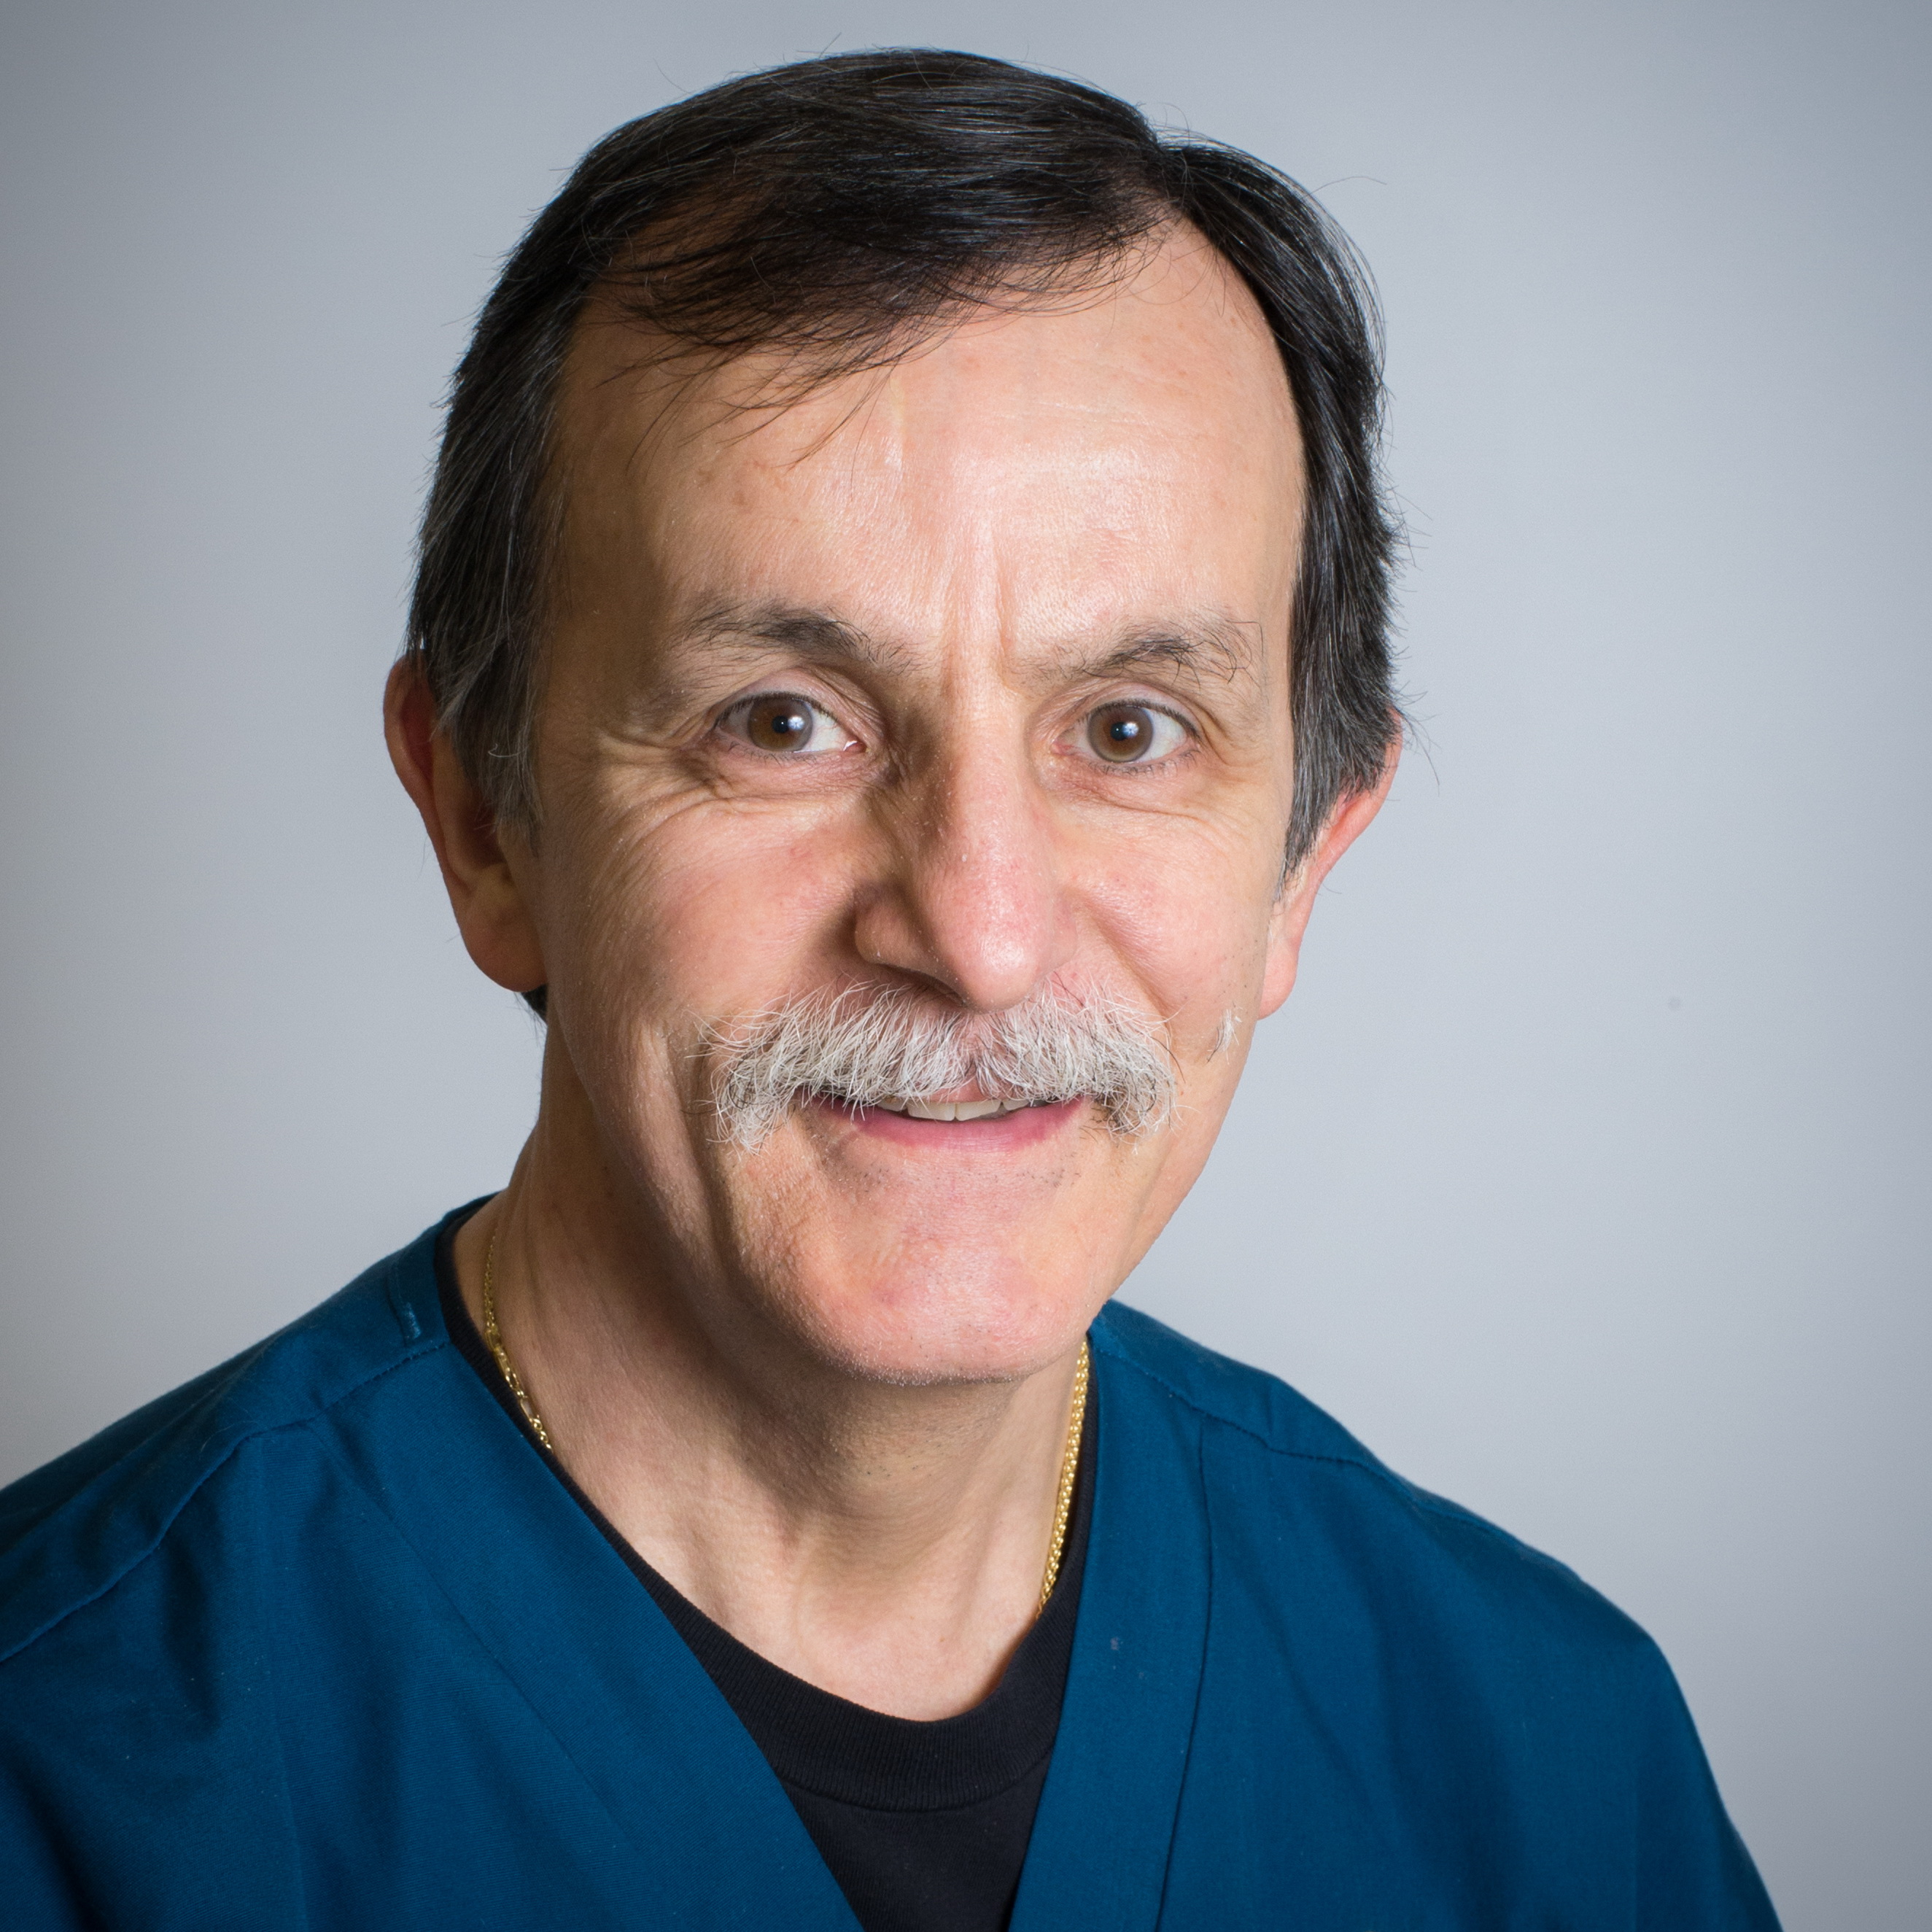 Session 4:  Tuesday, May 11 with Dr. Loic Legendre